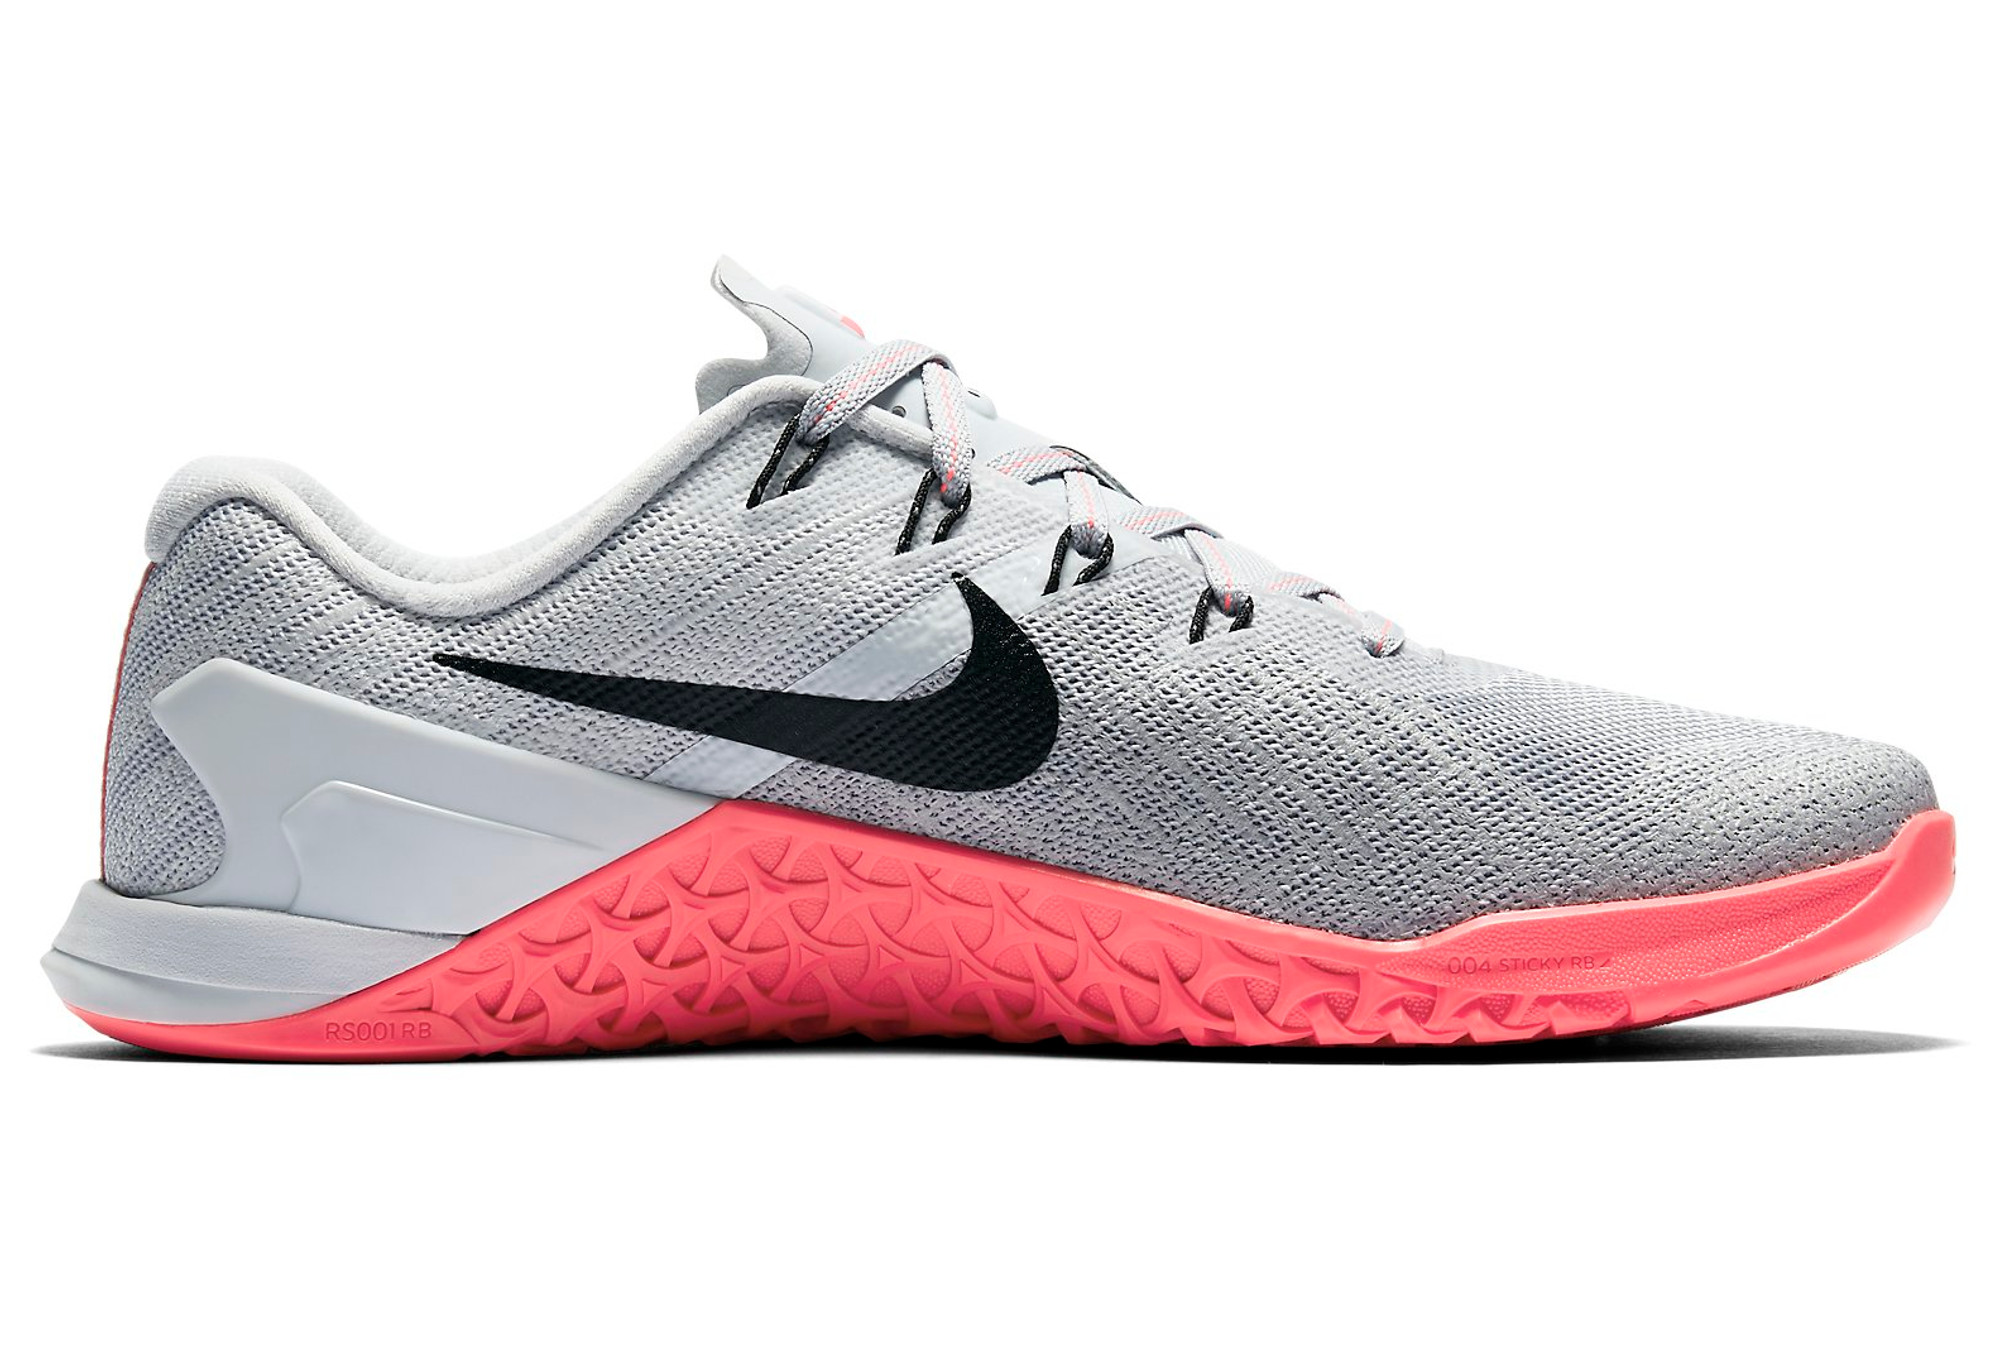 Chaussures 3 Cross Nike Metcon De Femme Training Rose Gris Y7fwYqr